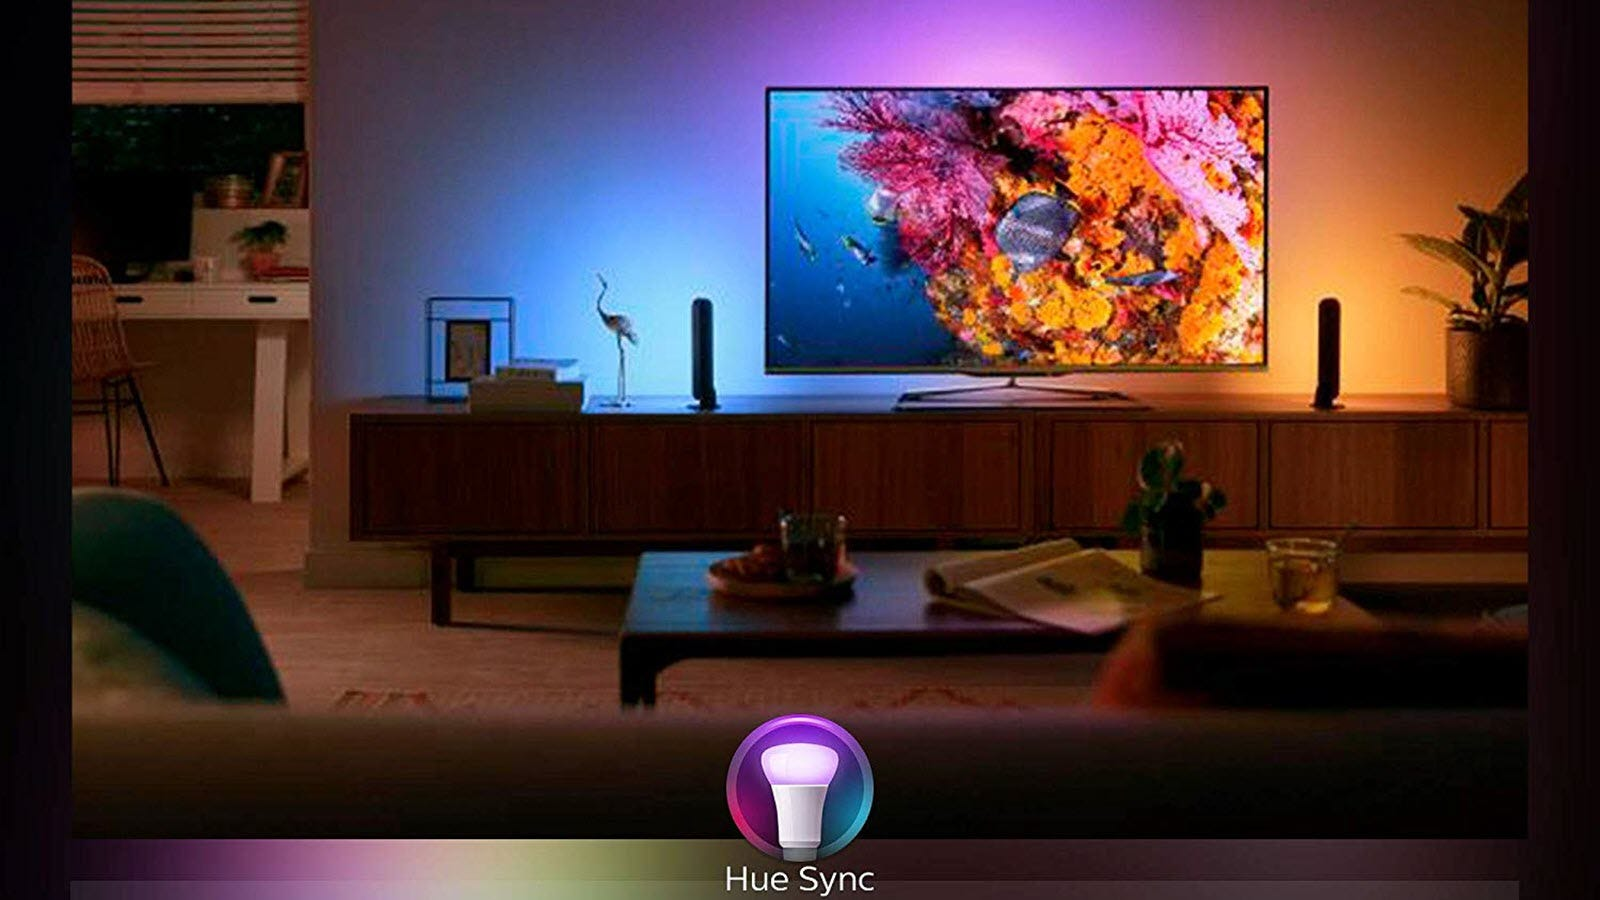 A living room lit with several smart lights in blue, purple, and orange.